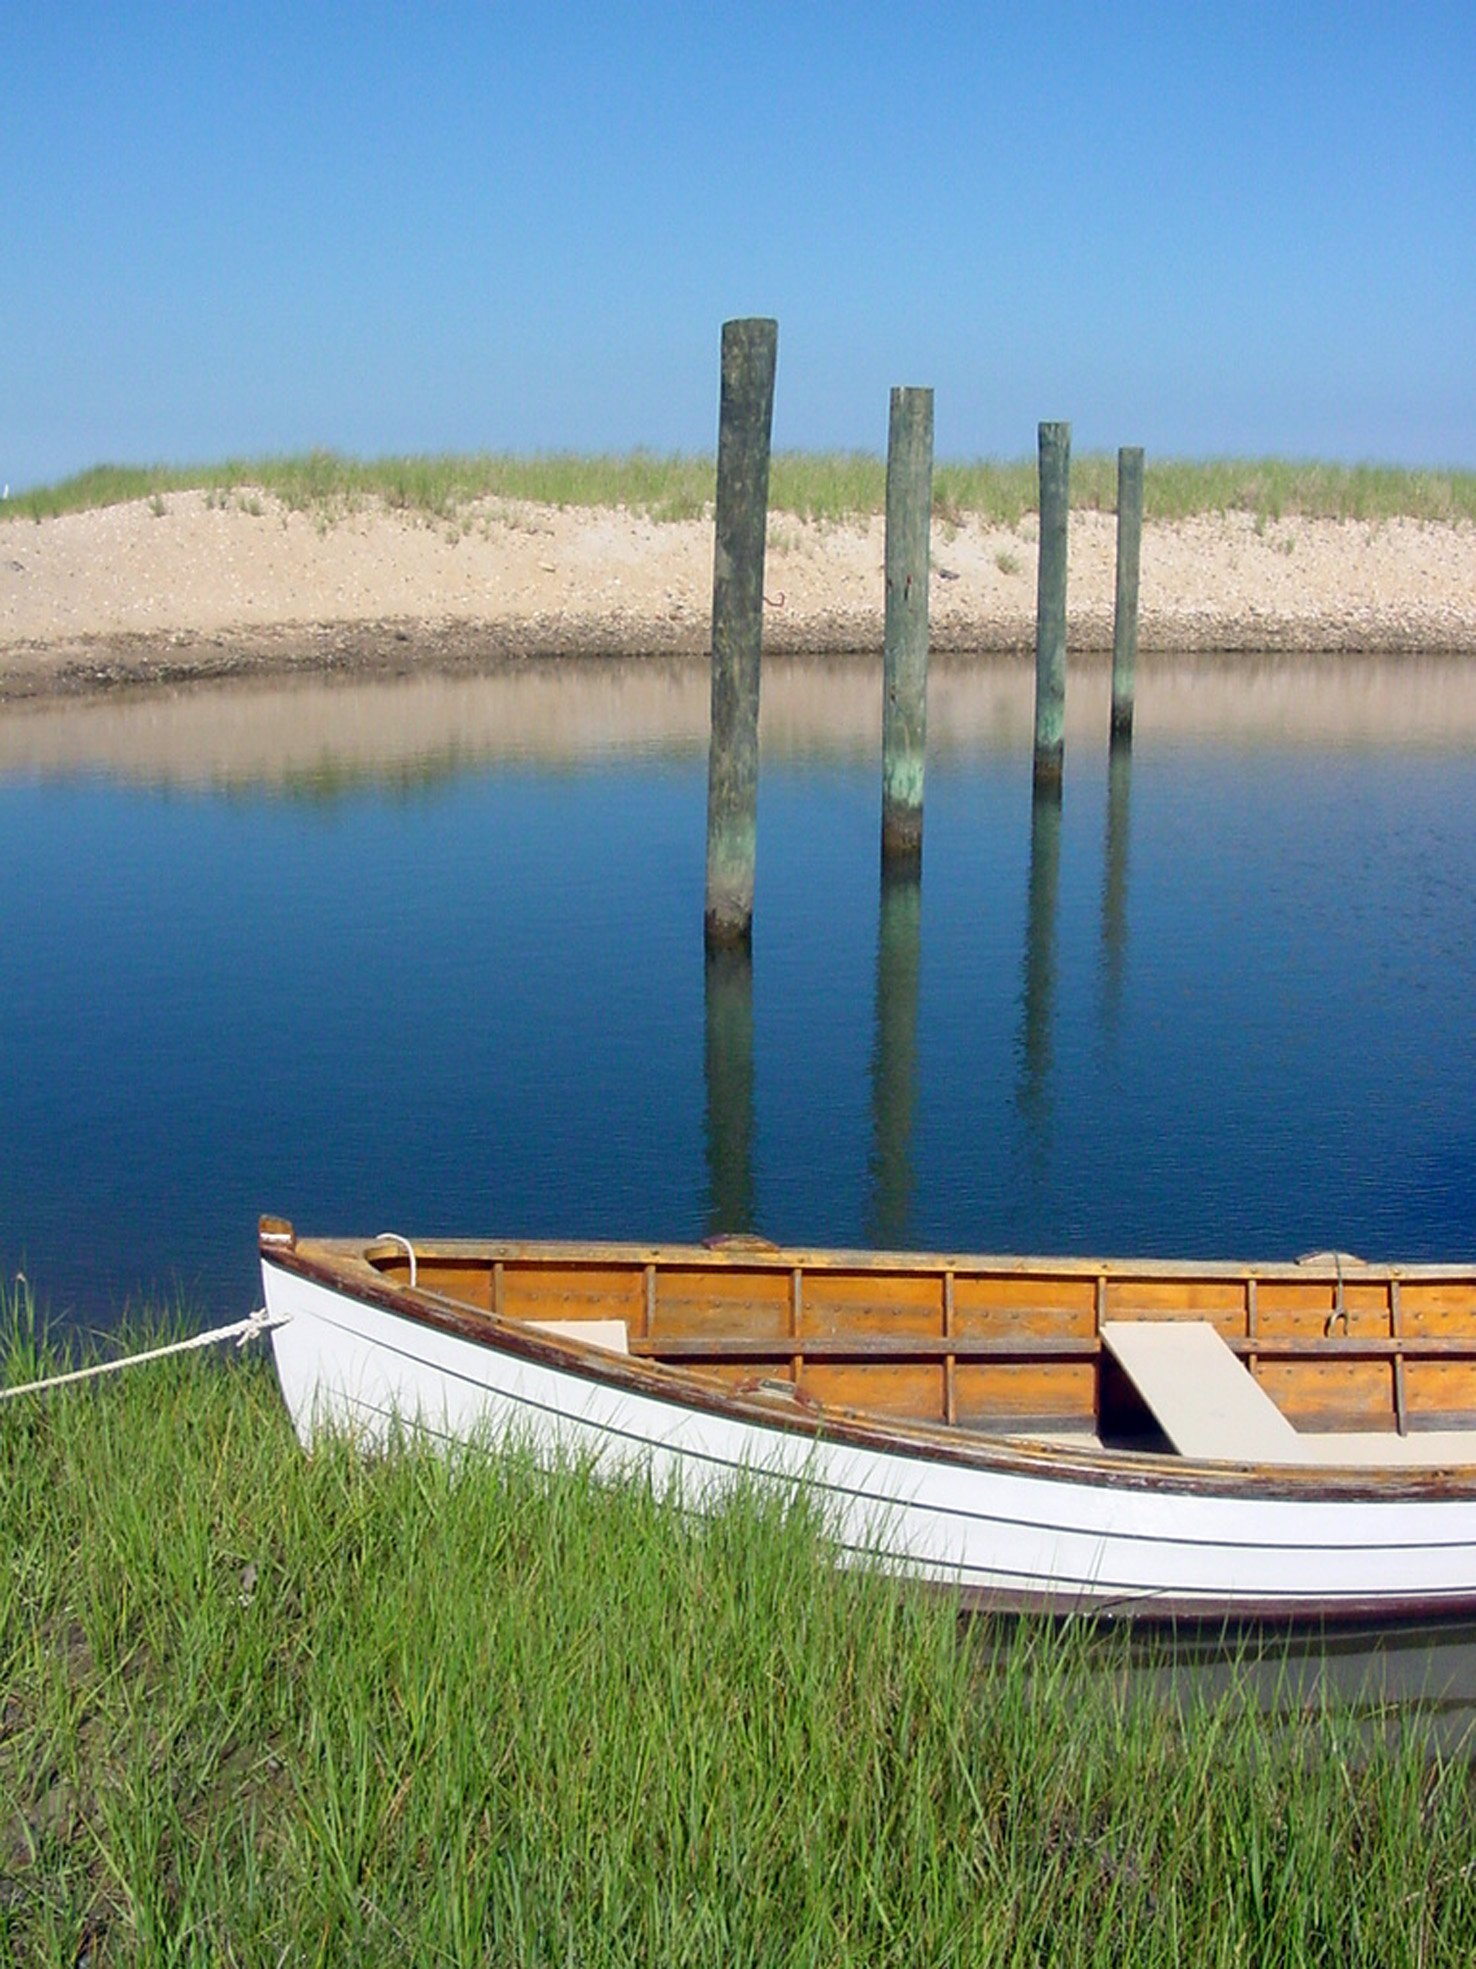 The quiet lagoon waters of West Tisbury. Photo: Heather Goff